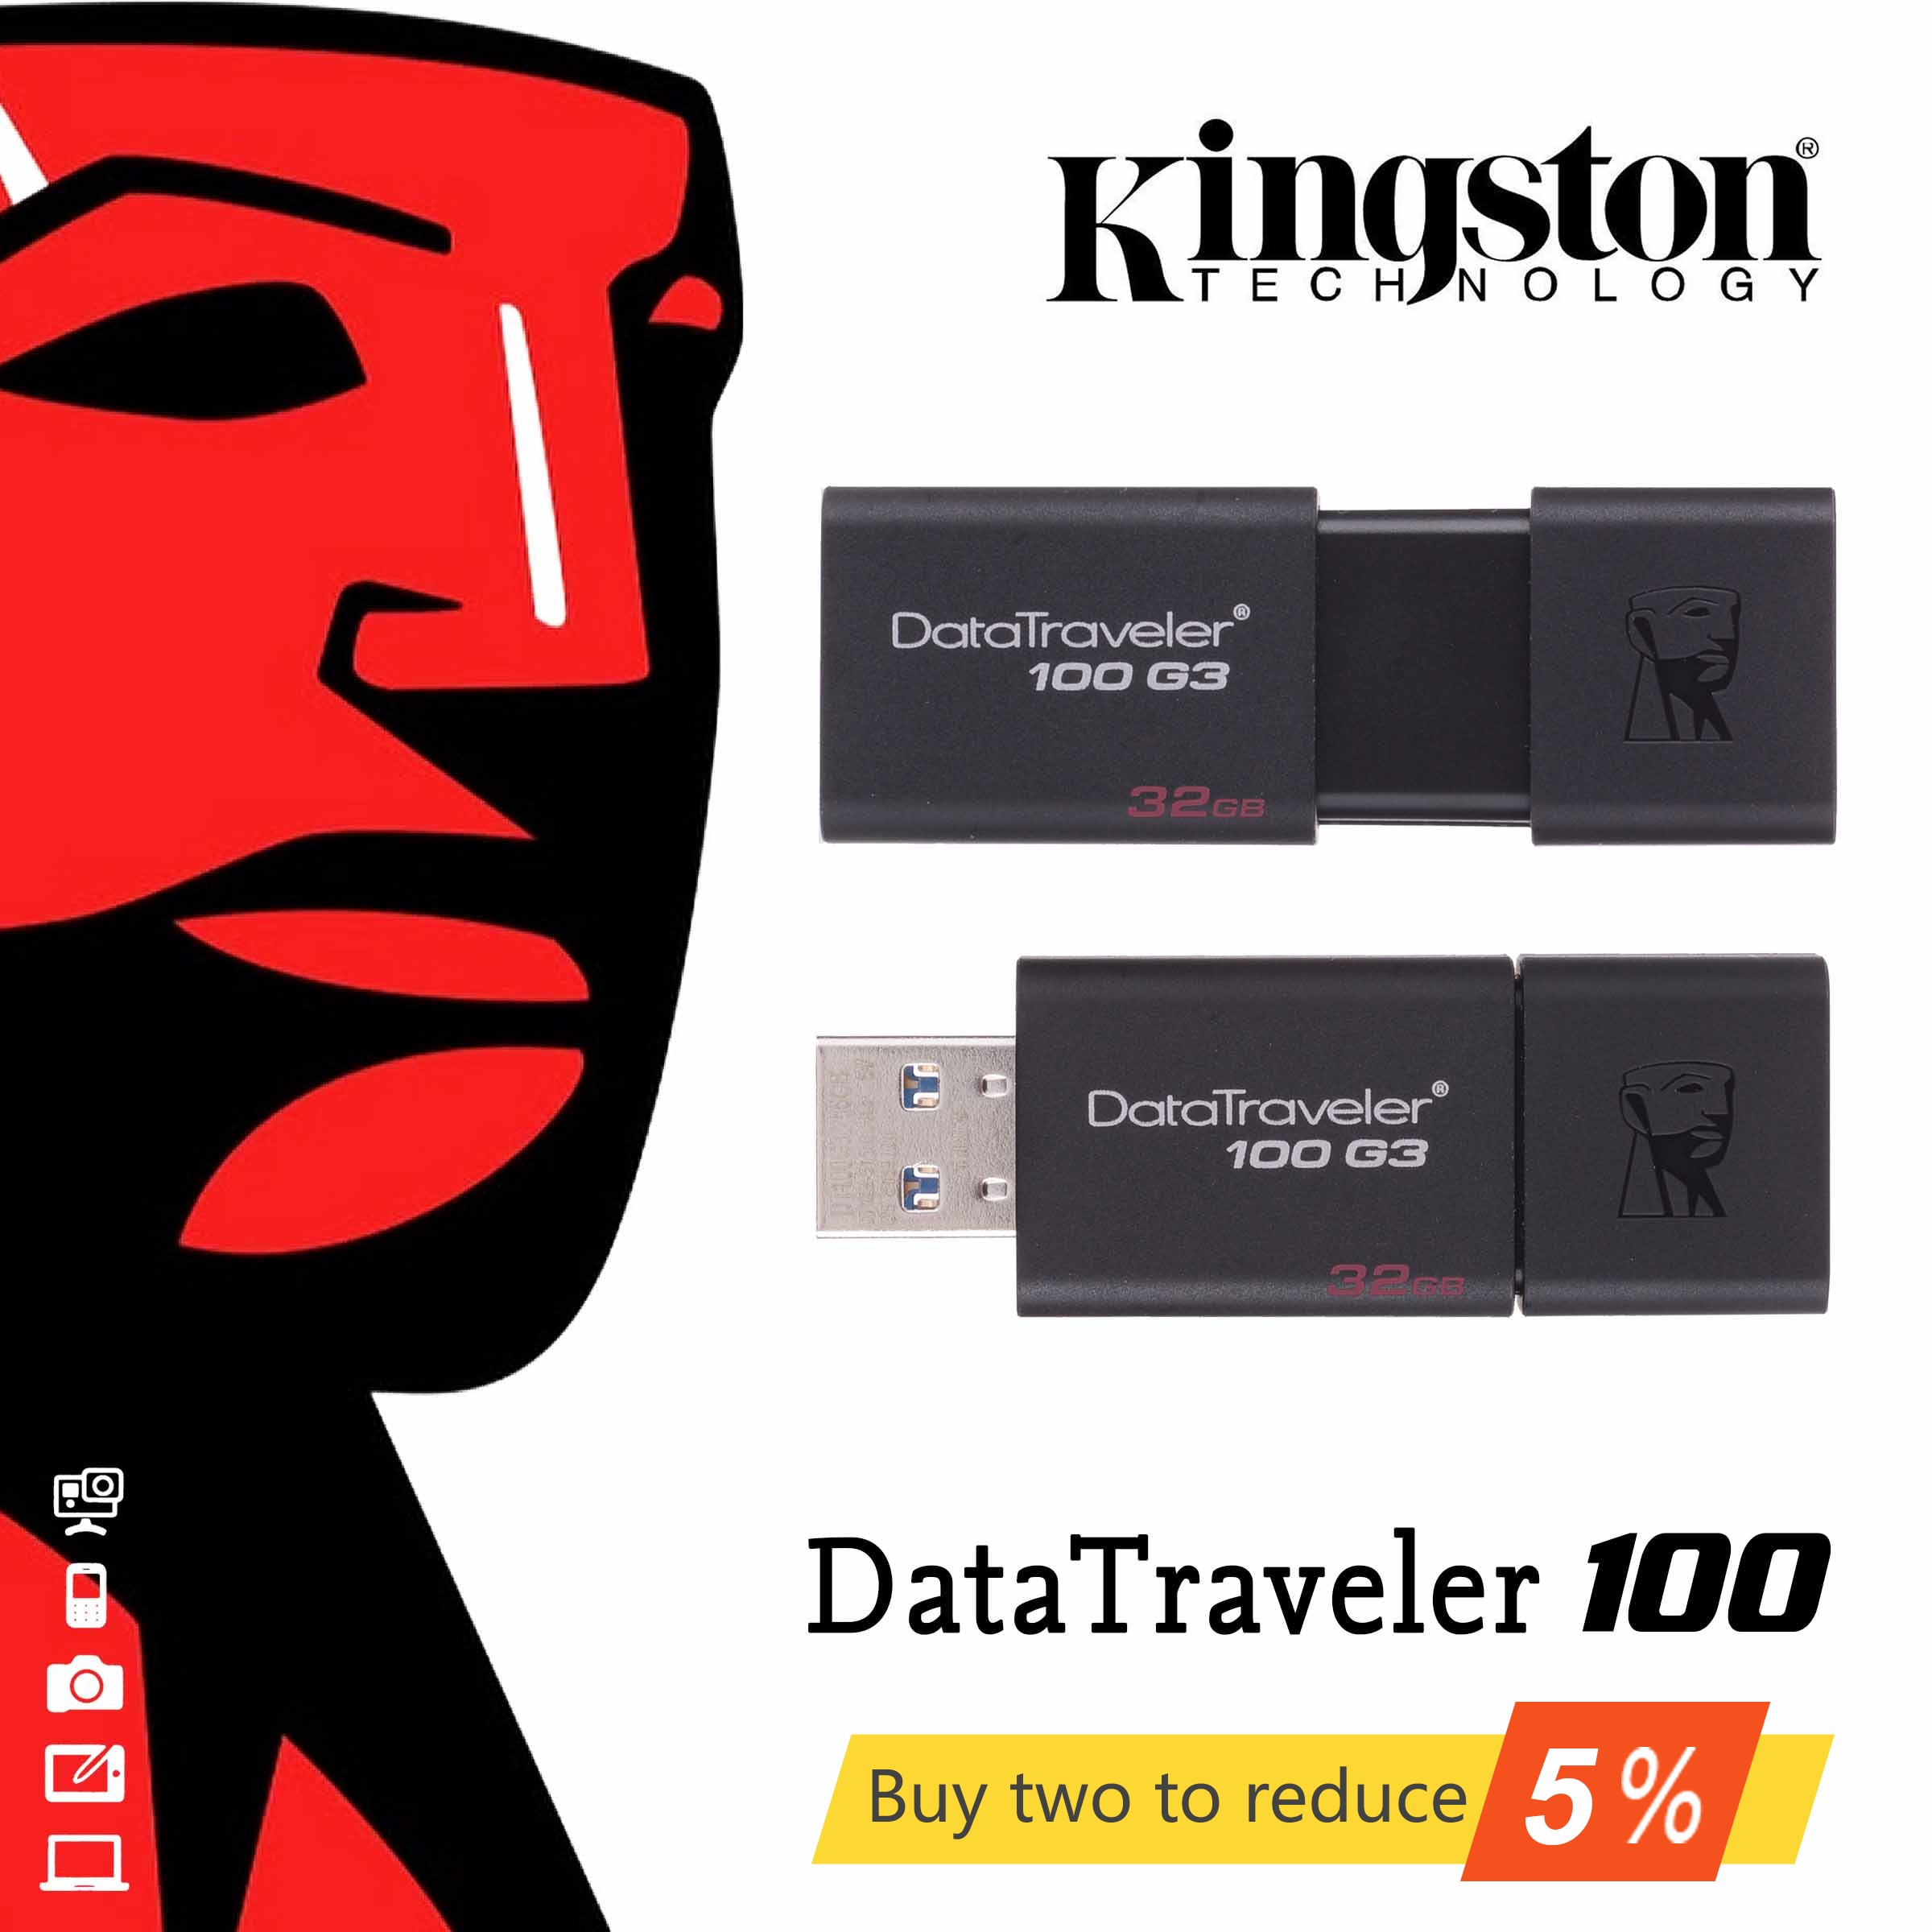 D'origine Kingston DataTraveler 100 G3 USB 3.0 USB Flash Drive 32 GB 64 GB 128 GB USB Pen Drive U disque 32 64 128 GB DT100G3 PenDrive